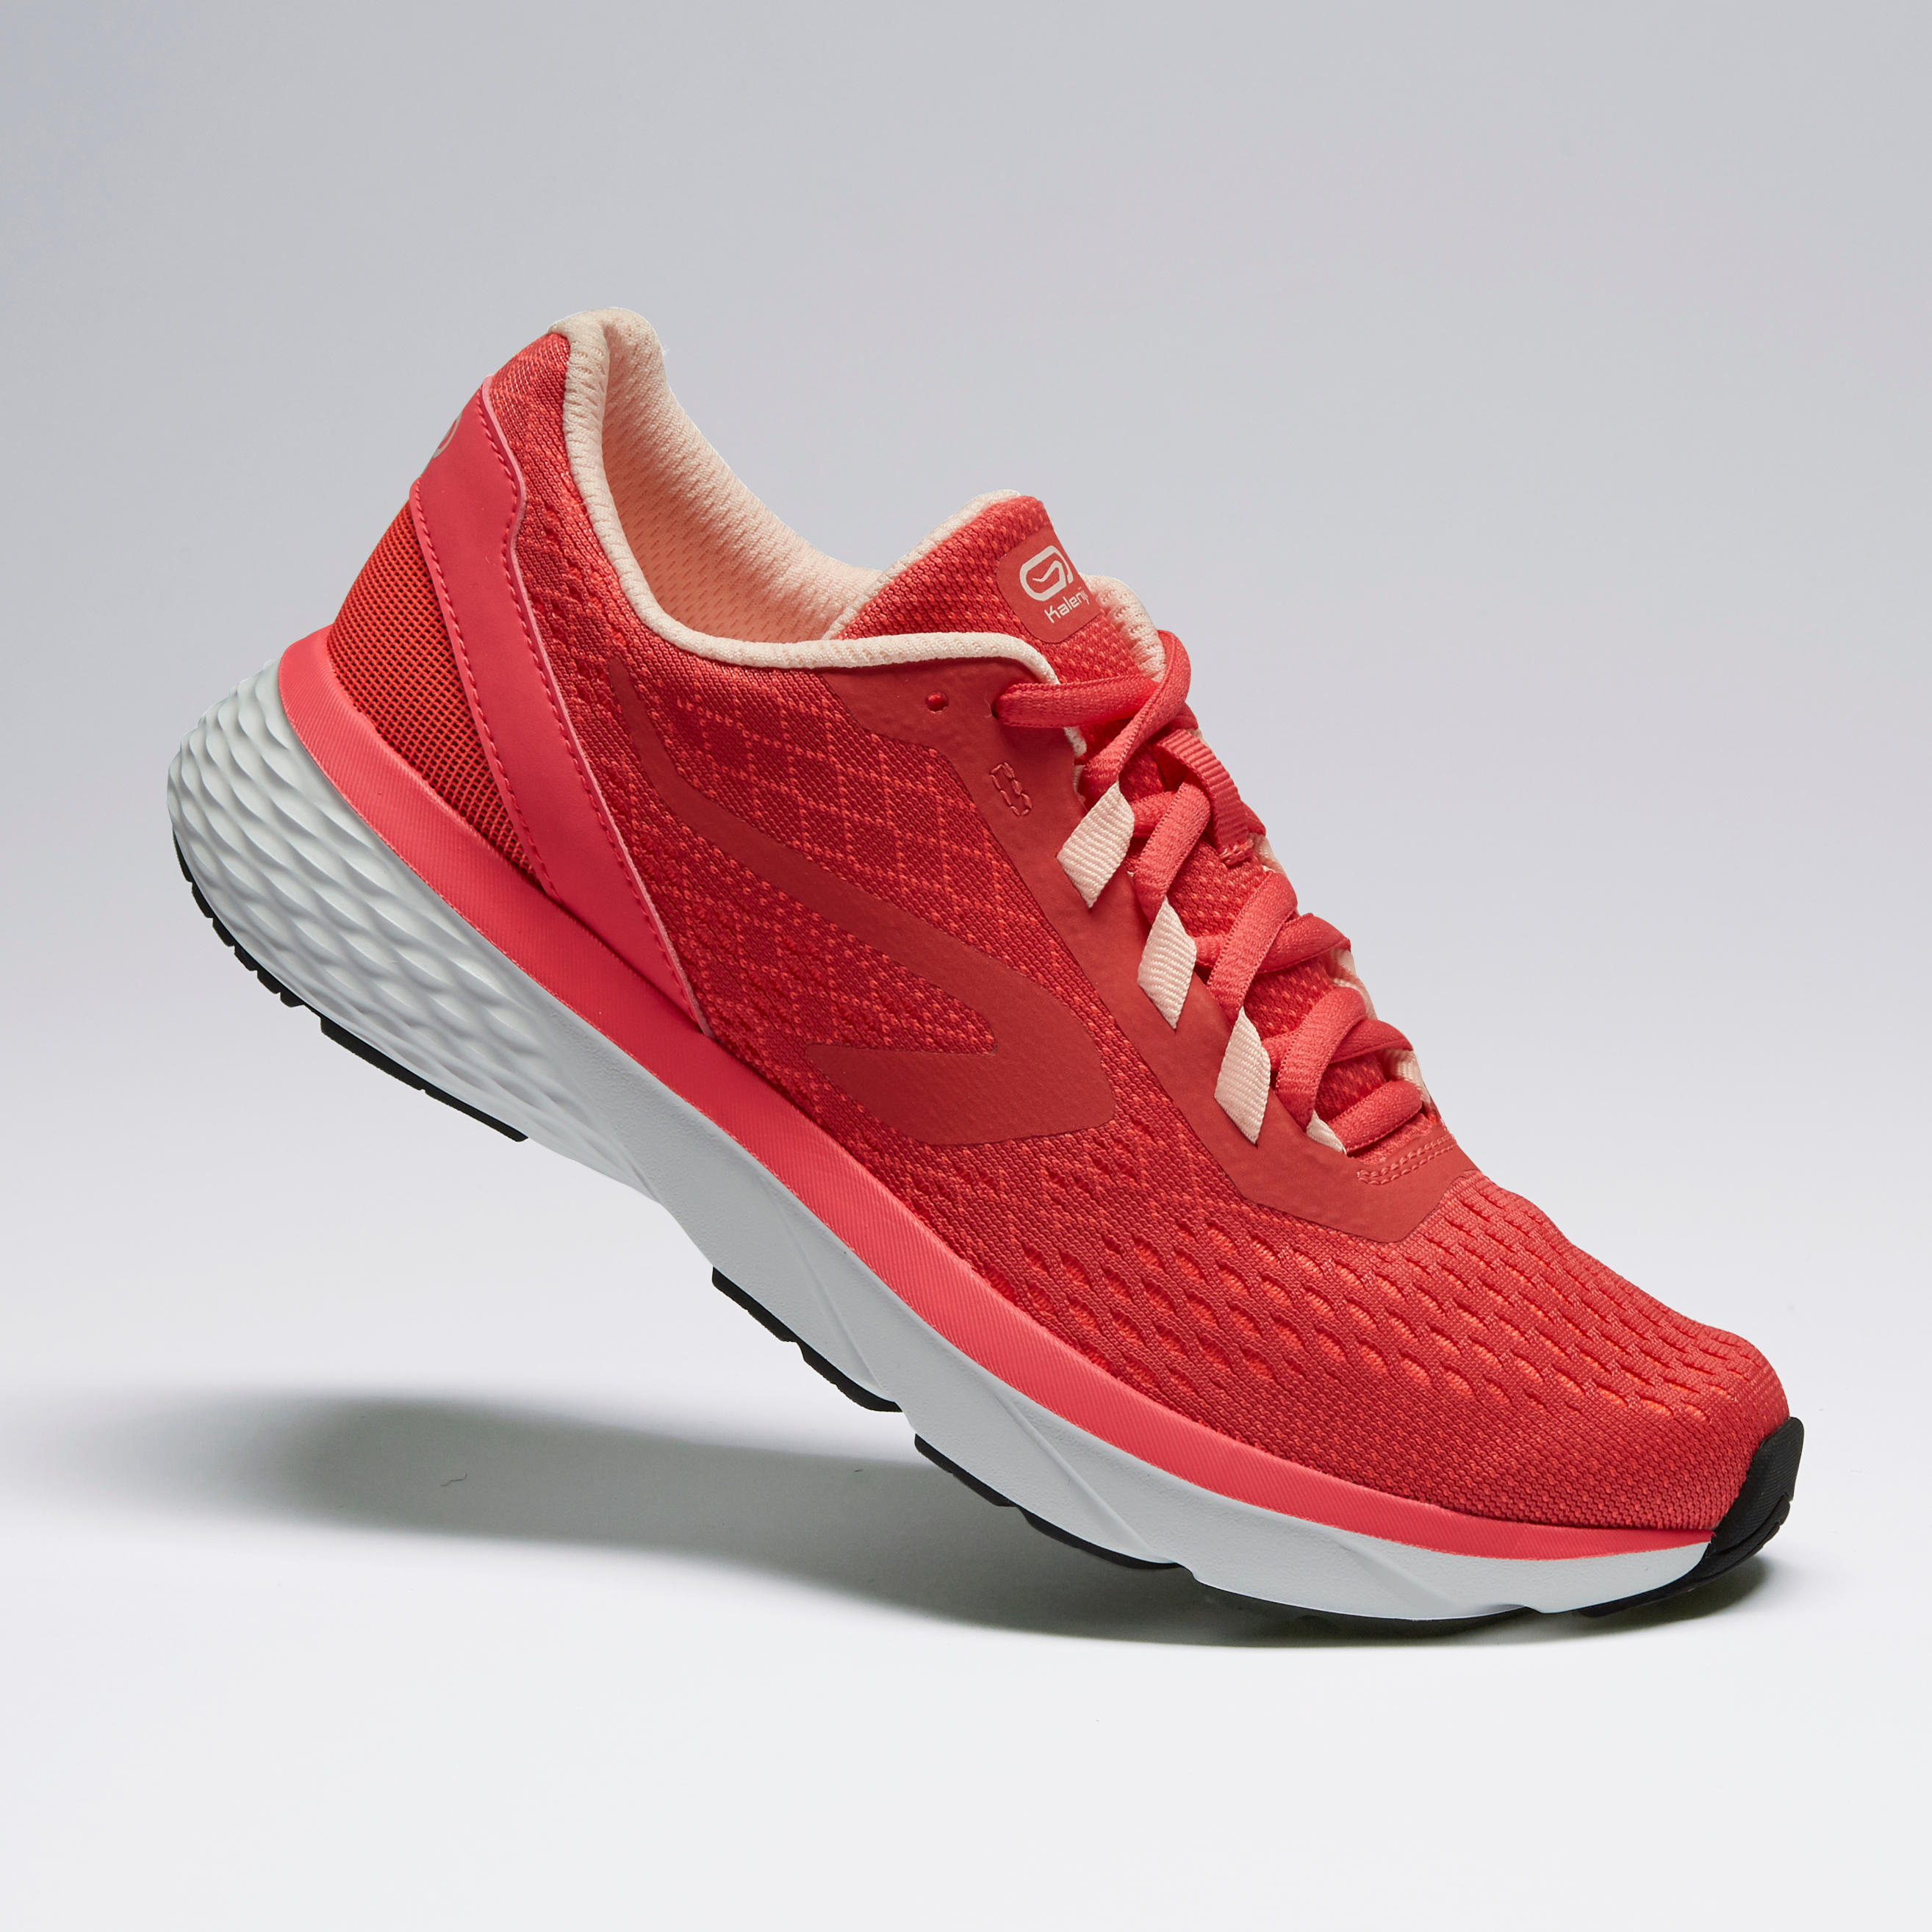 Chaussures Corail Support Femme Run Jogging qUMzGVpS